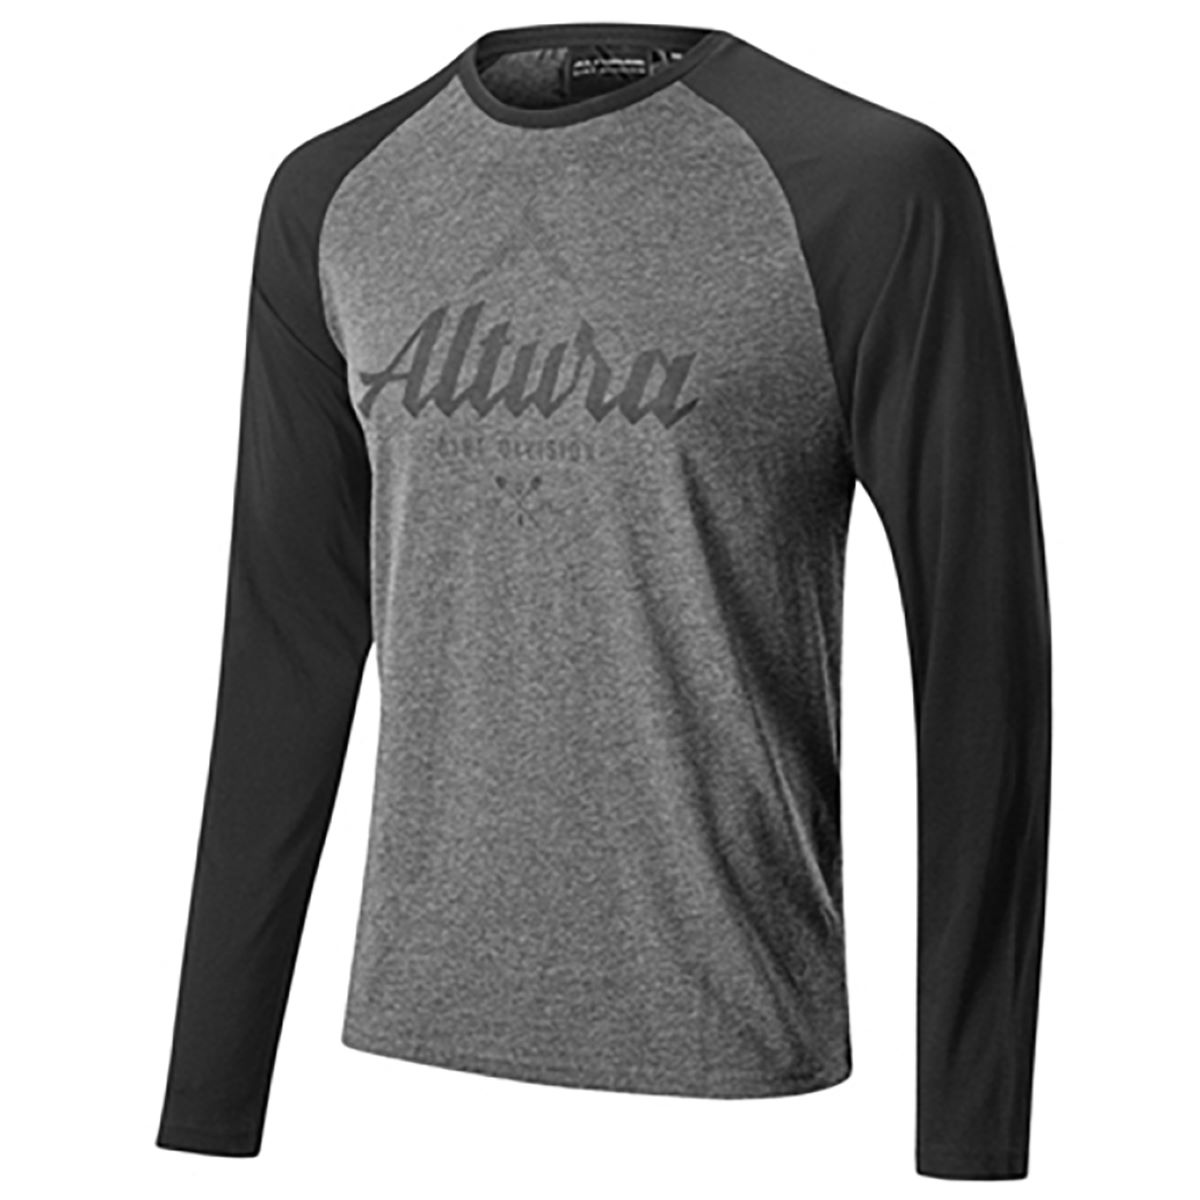 Altura Script Long Sleeve T-shirt - Small Grey | Tees